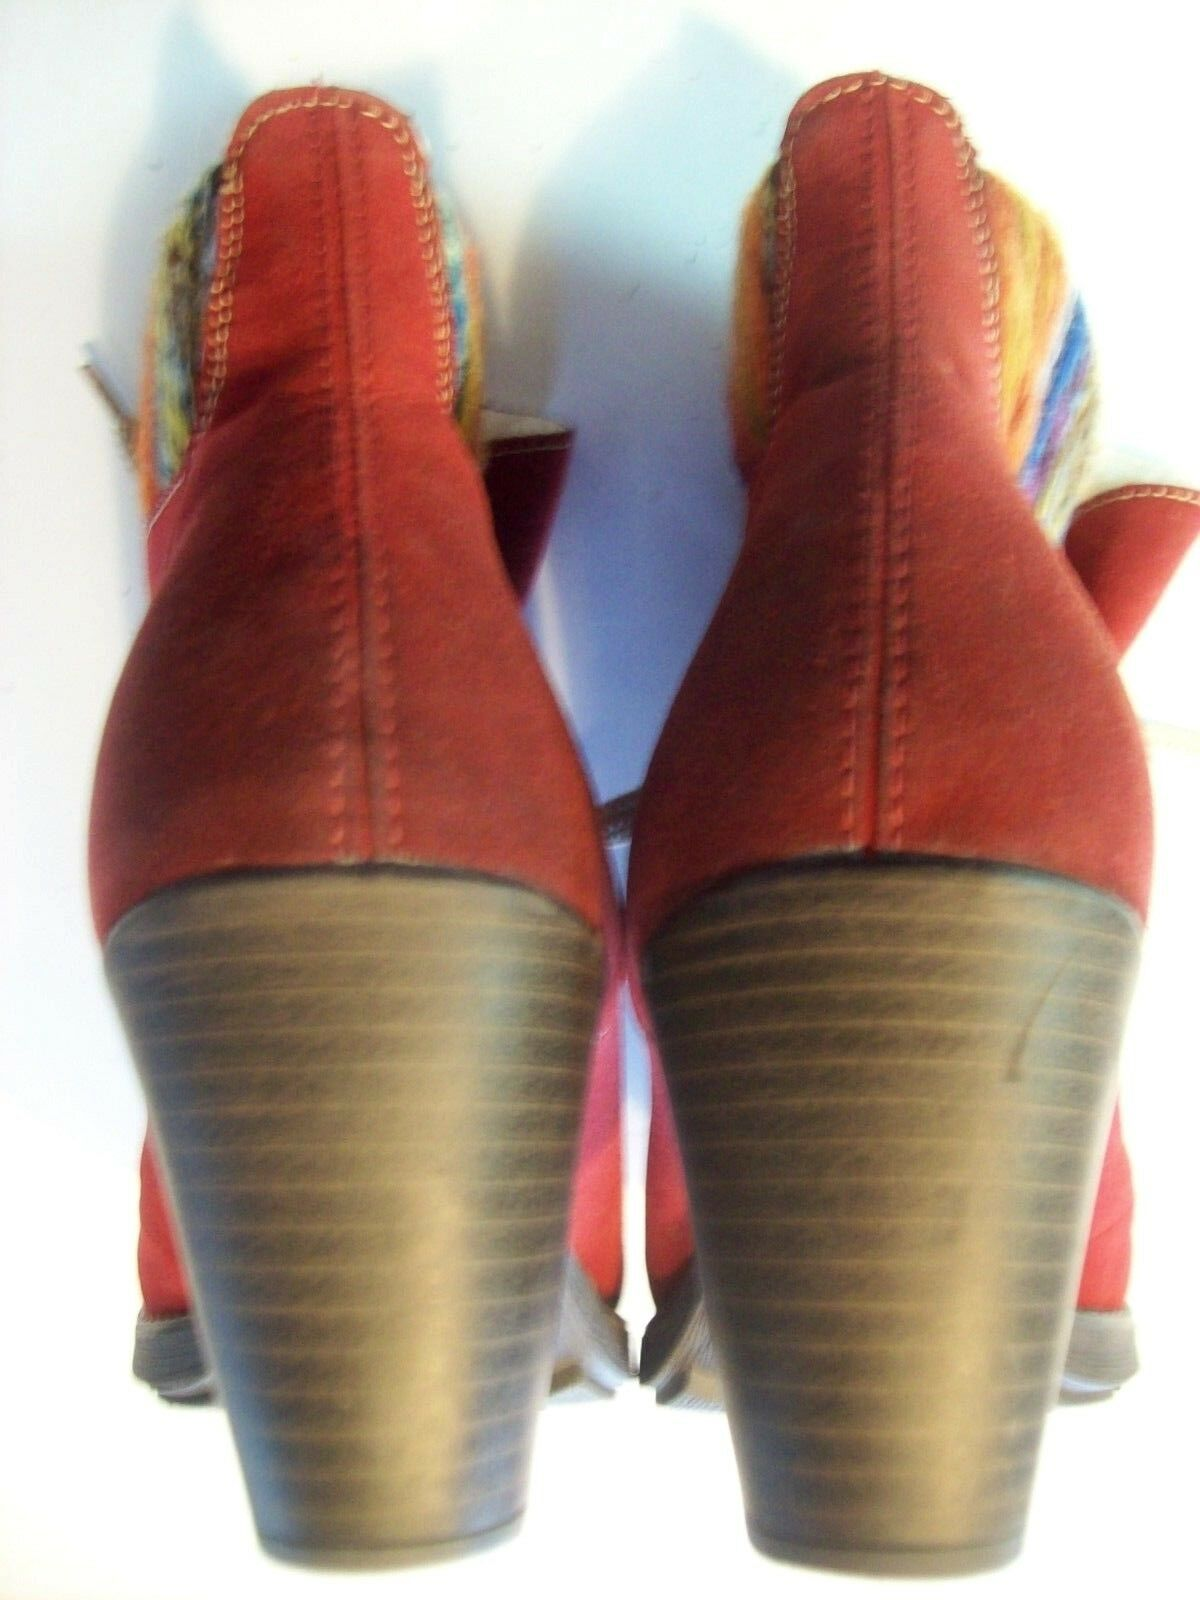 Rieker ROT Suede Ankle Stiefel Stiefel Ankle Farbeful Knitted Cuffs Schuhes Größe 40 9 @ cLOSeT 3e0e2e